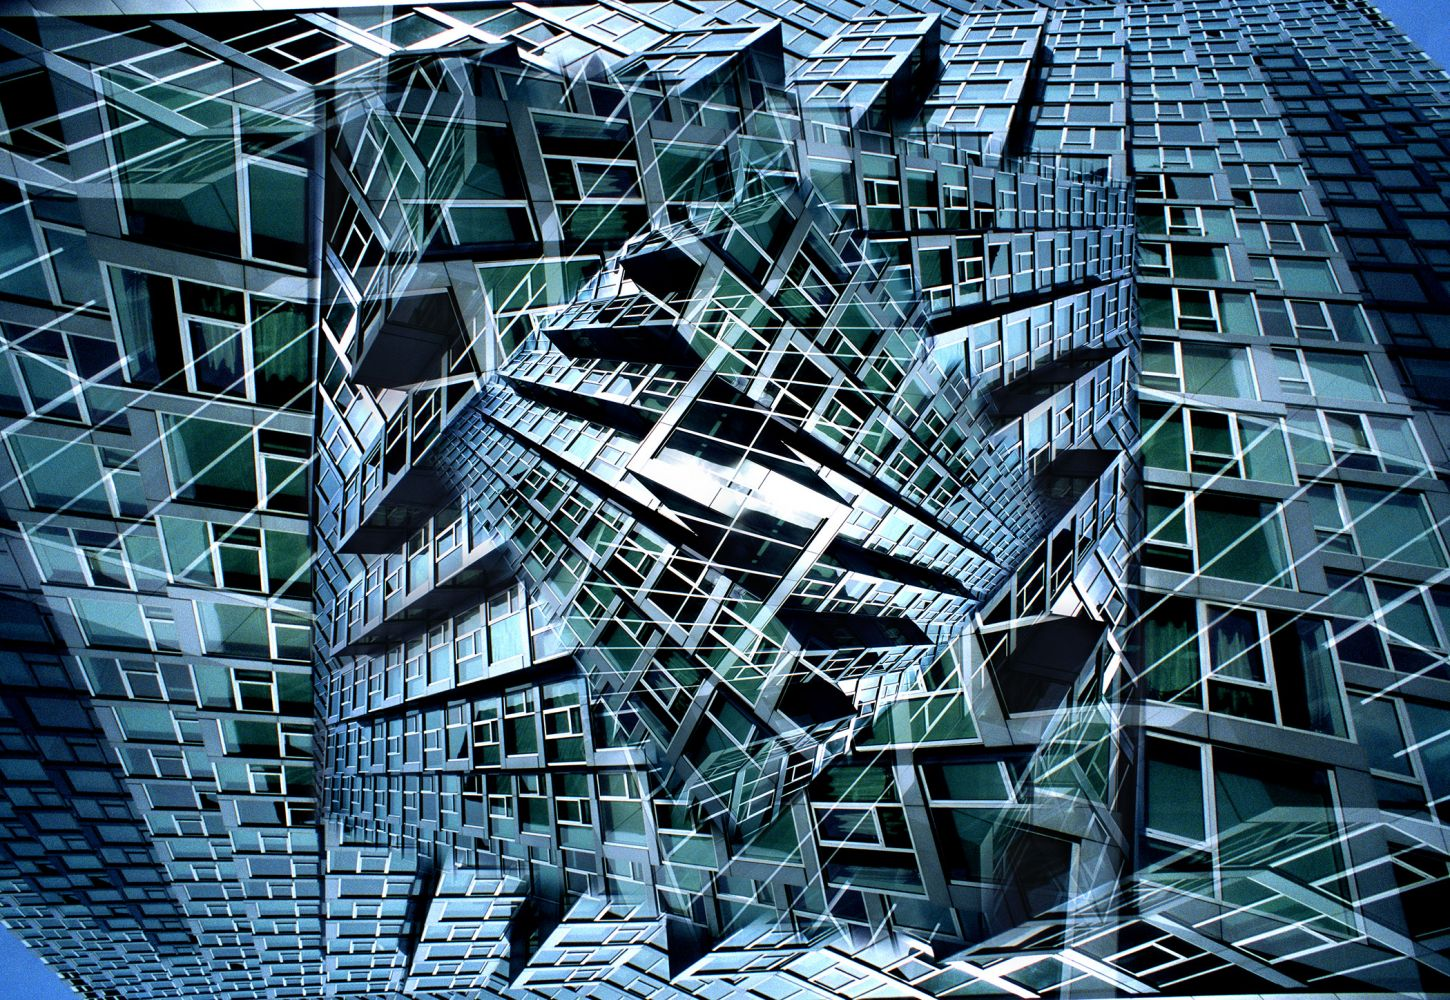 Chromaluxe brilliant print of a kaleidoscopic abstract image featuring a building